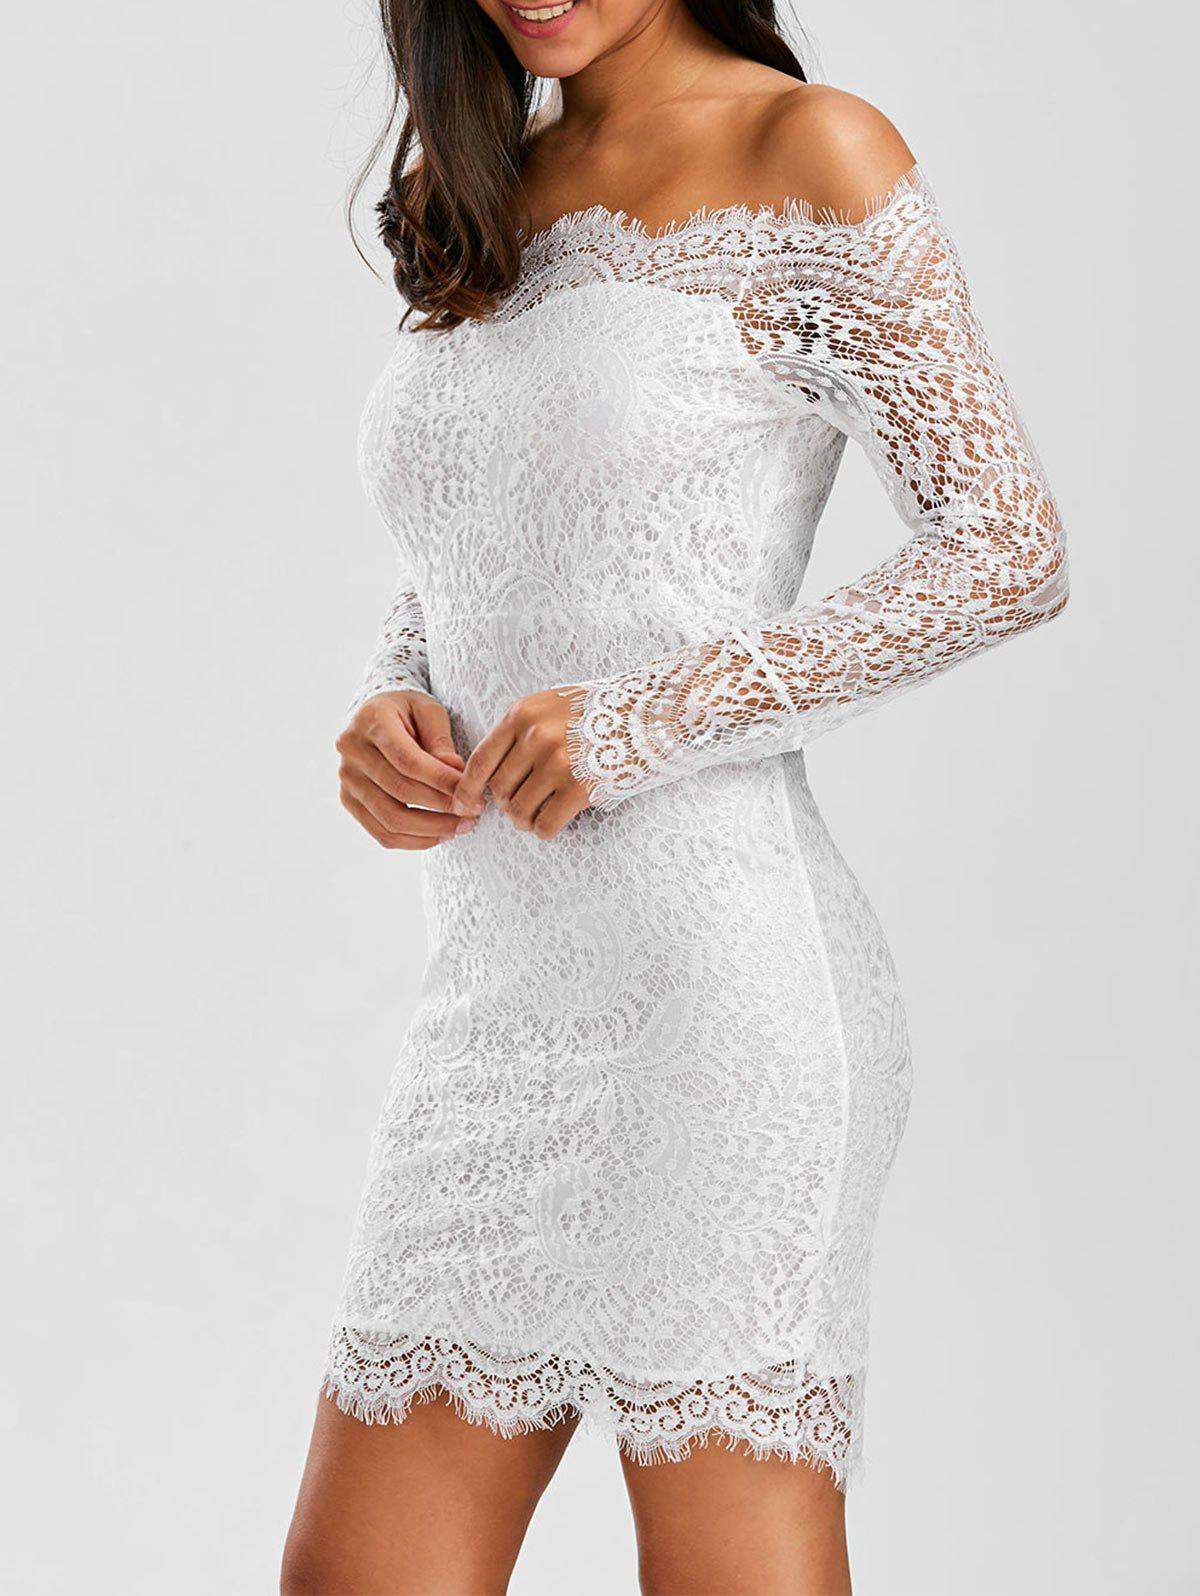 White One Size Off Shoulder Lace Cocktail Bridal Shower